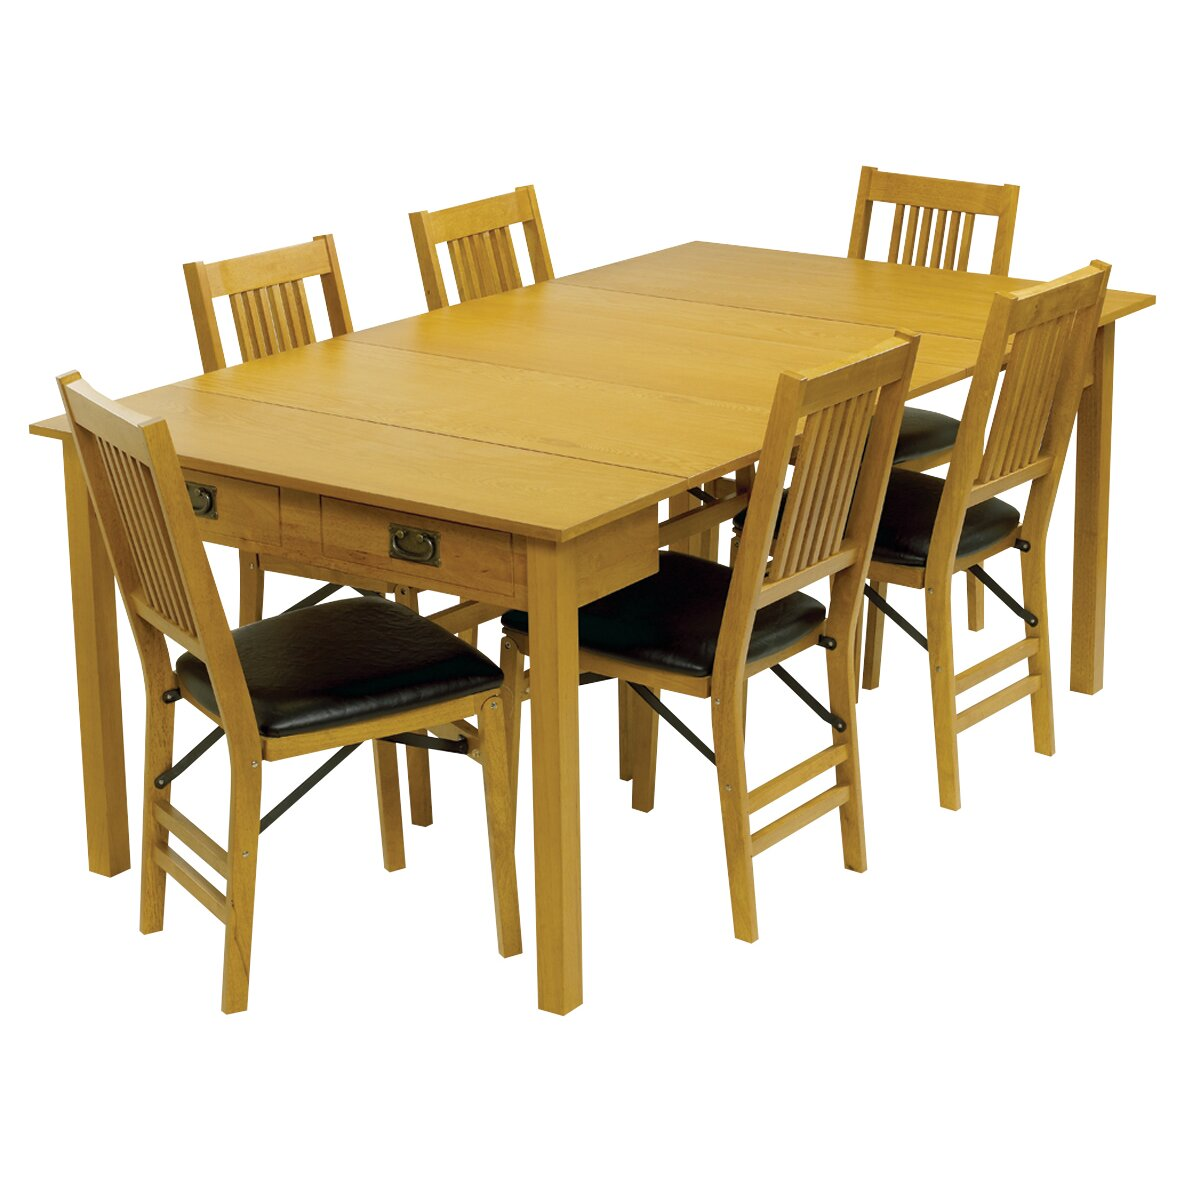 Stakmore mission style expanding dining table reviews for Mission style dining table